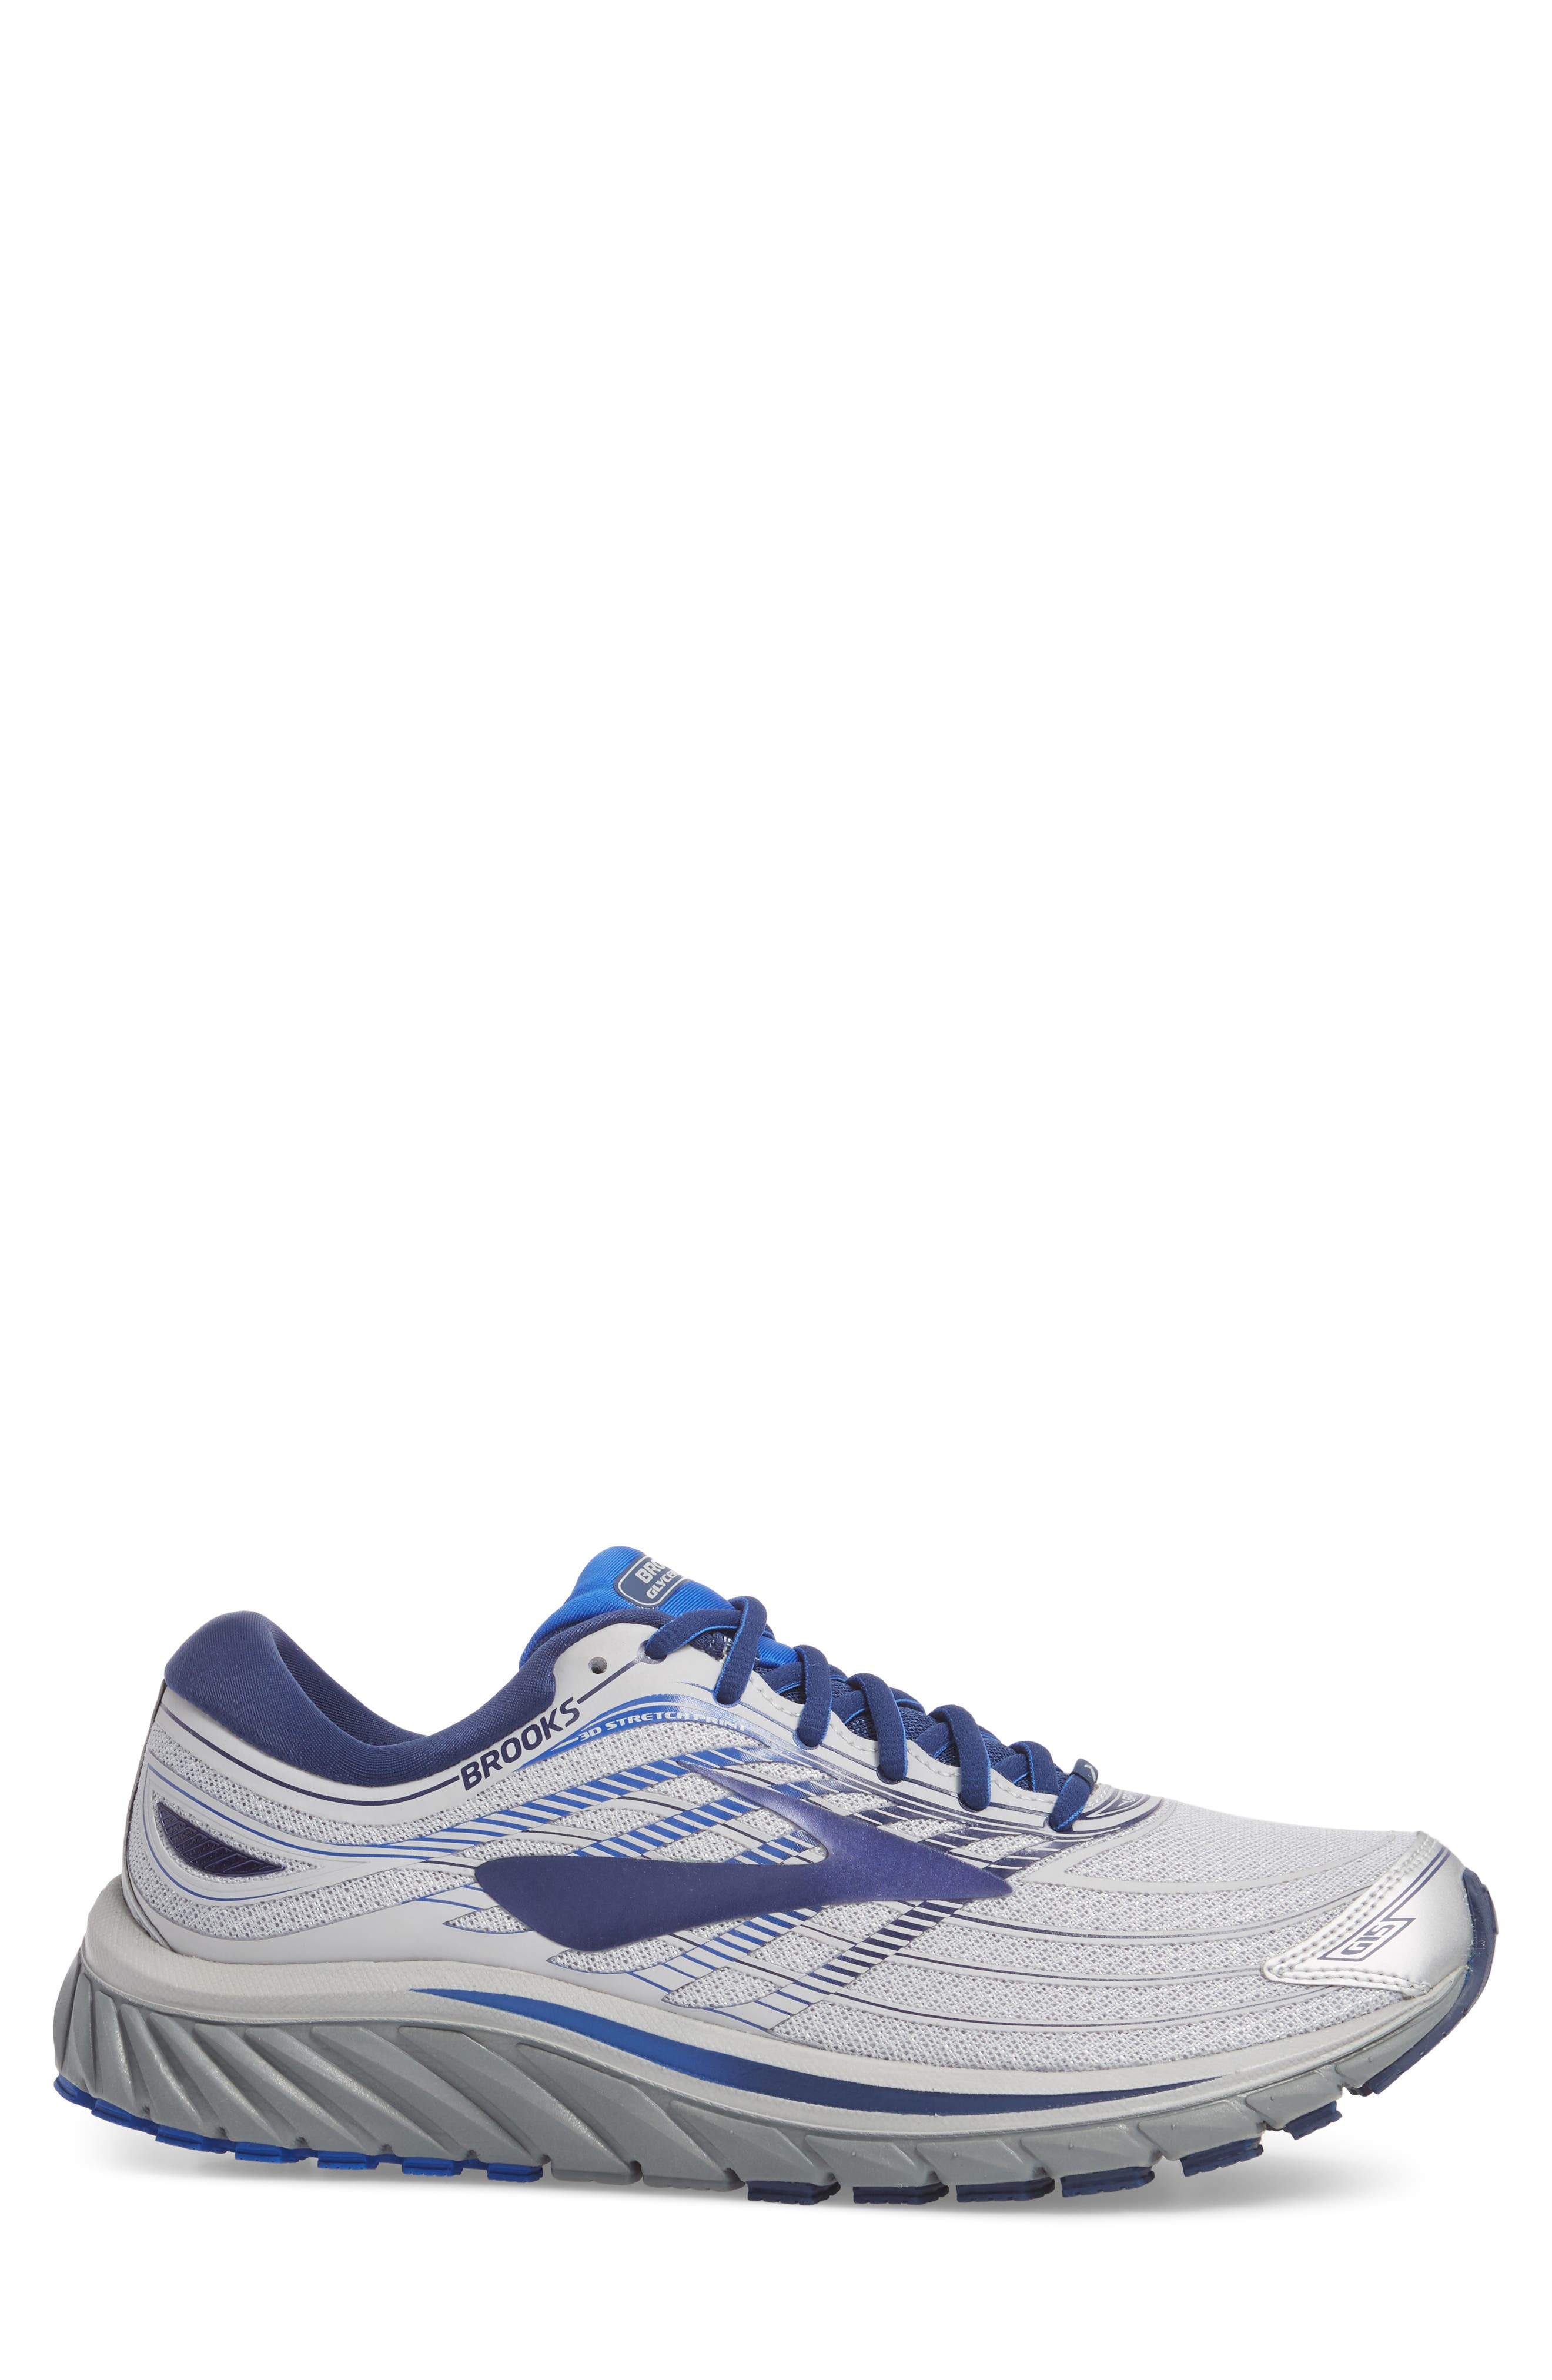 Glycerin 15 Running Shoe,                             Alternate thumbnail 3, color,                             036